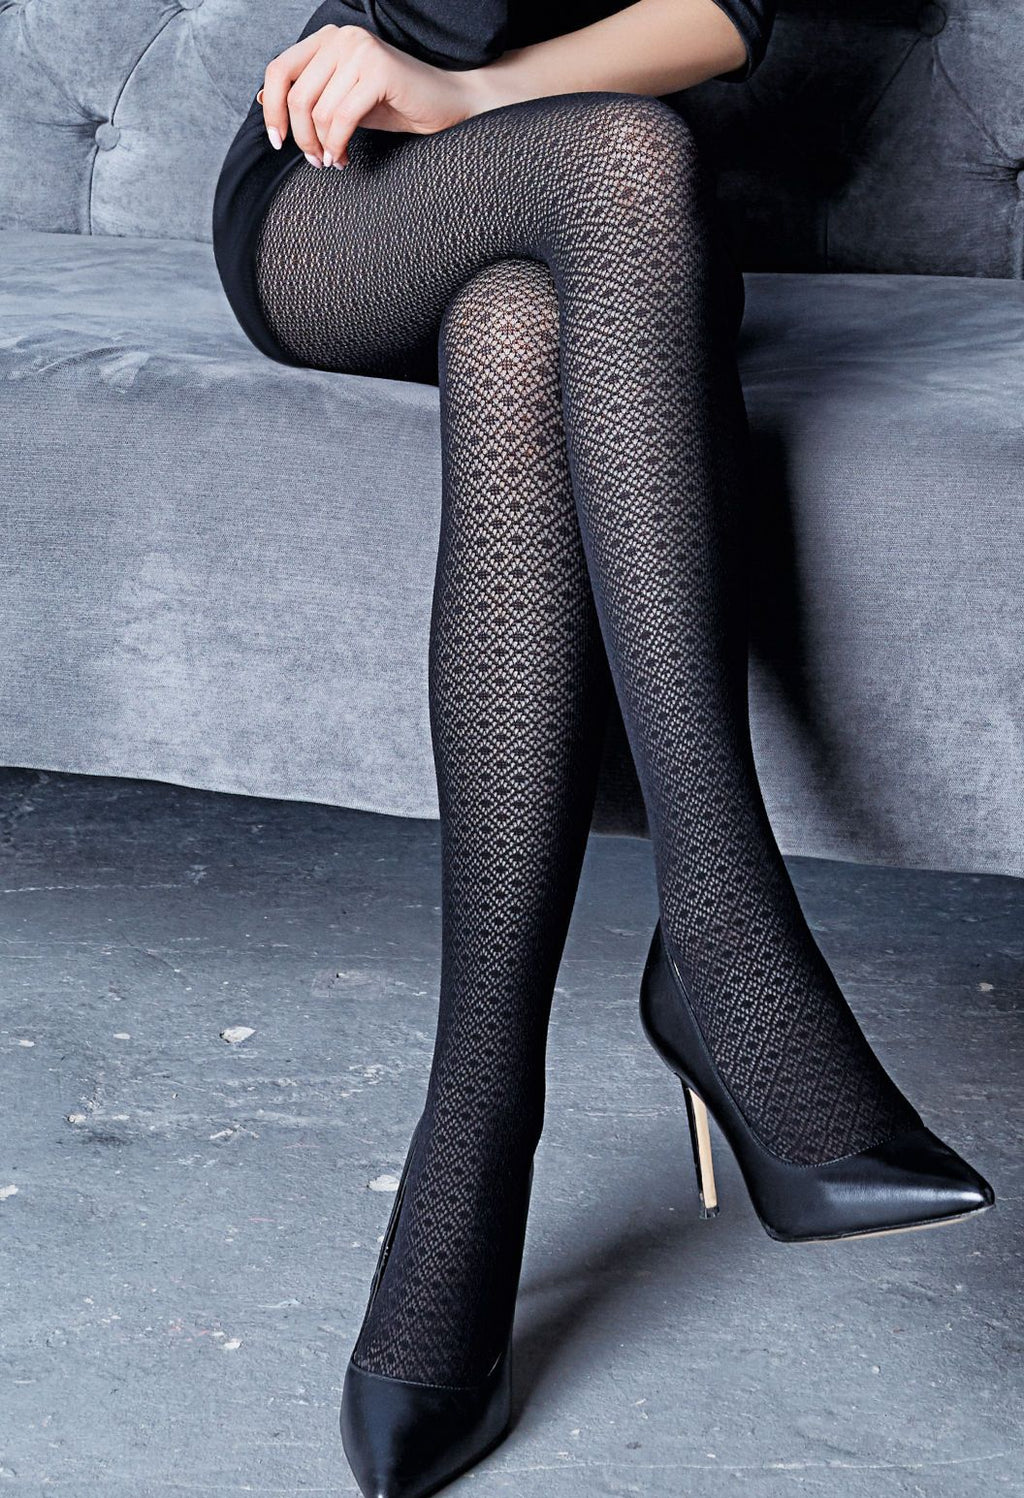 Tiffany 12 Diamond Patterned Lace Tights by Giulia in black